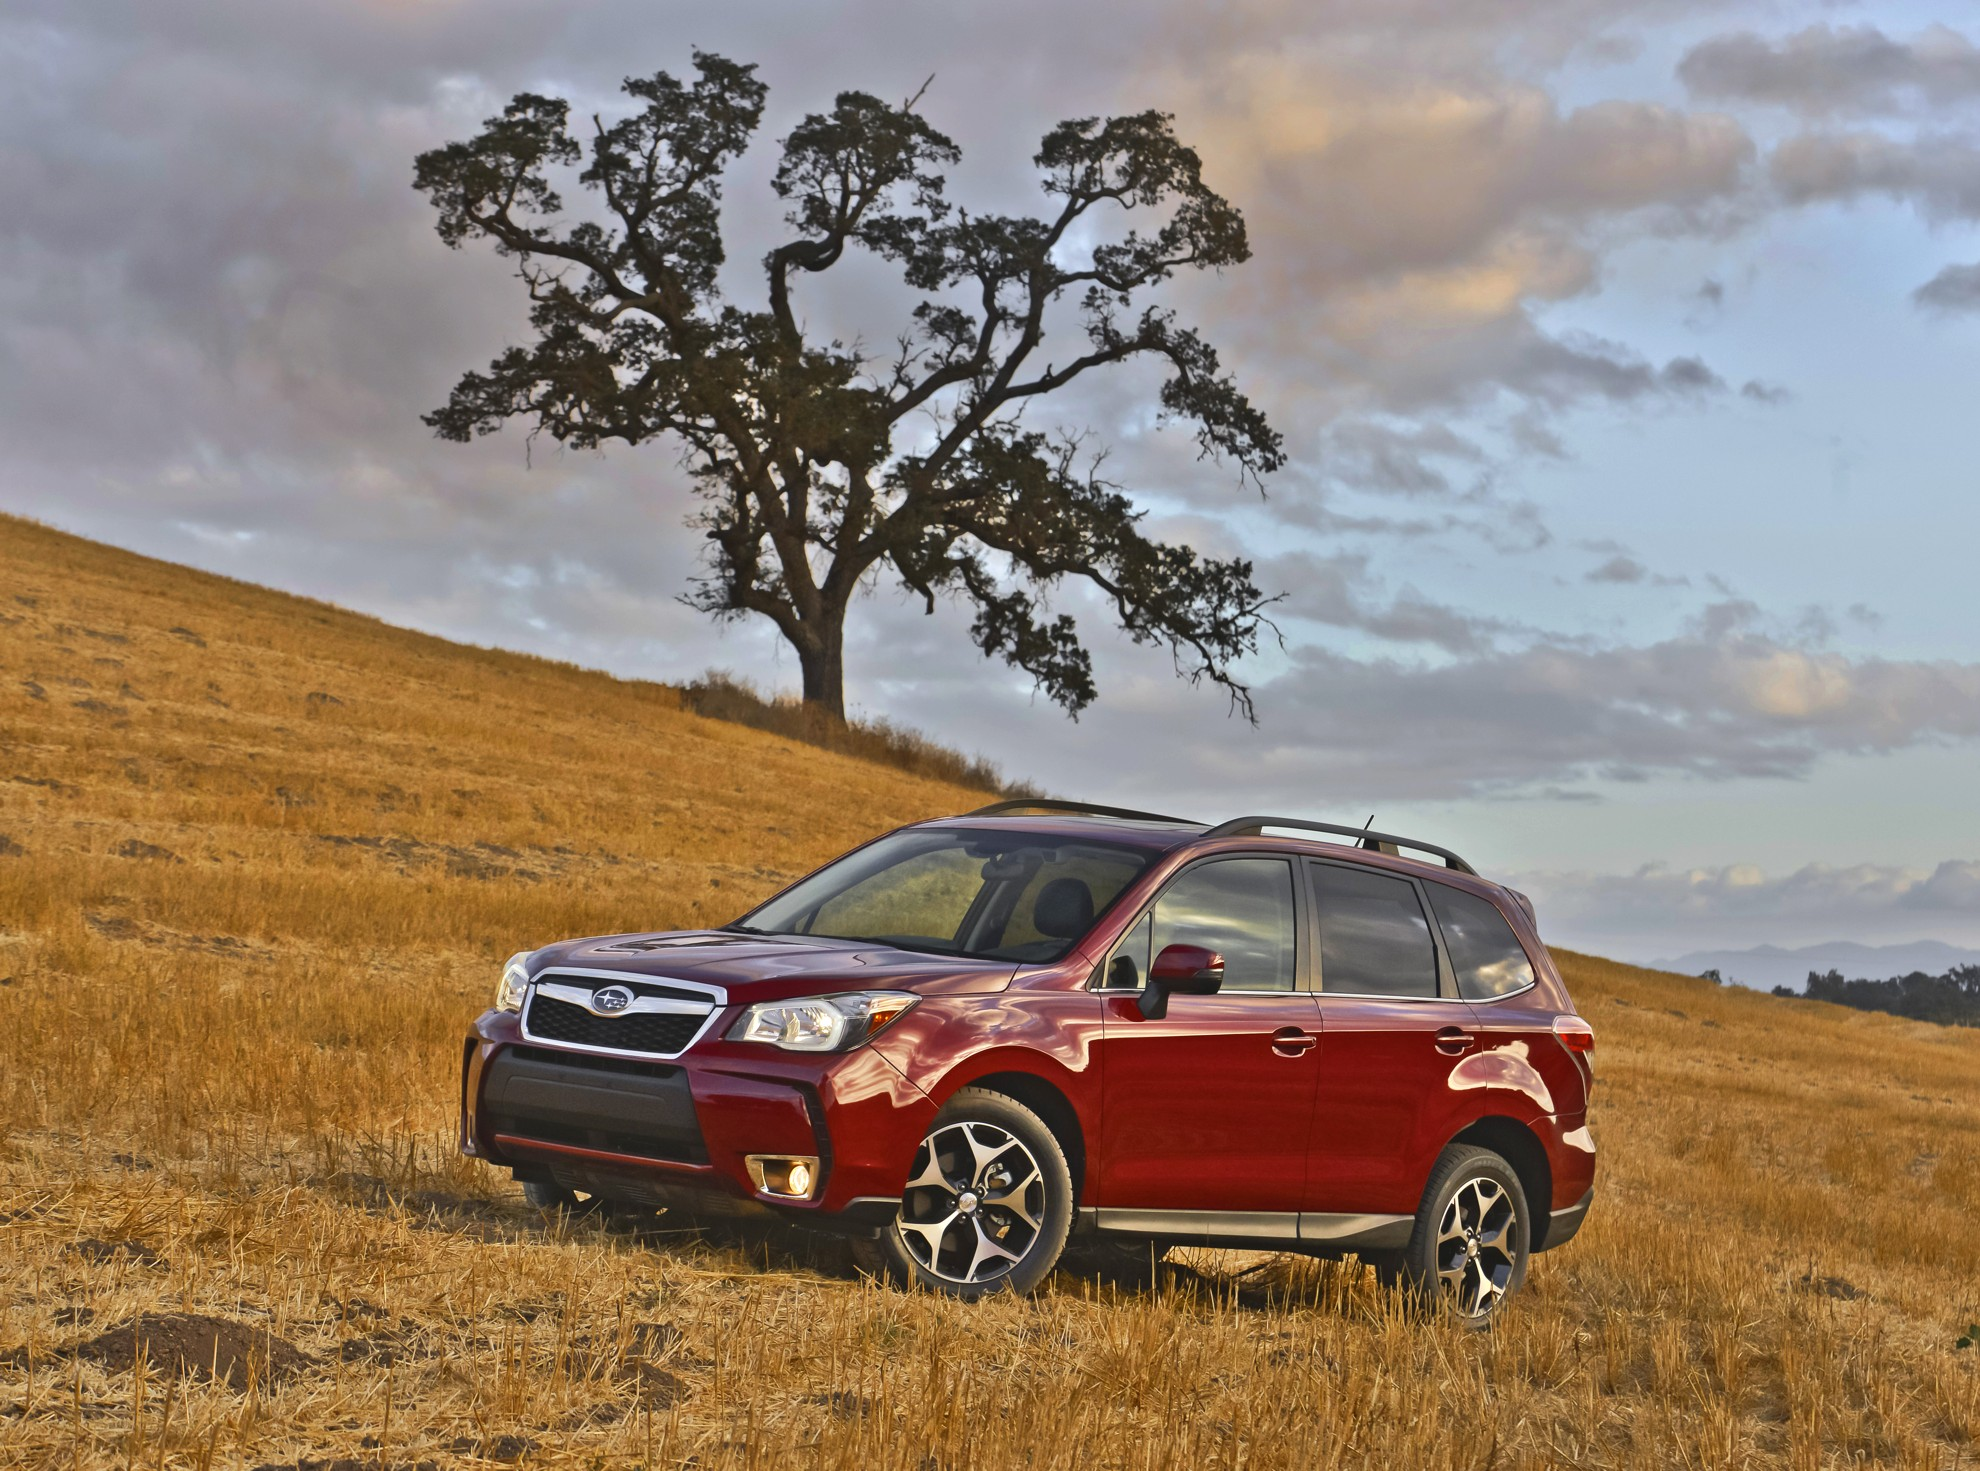 How much does a Subaru Forester Cost in the USA?